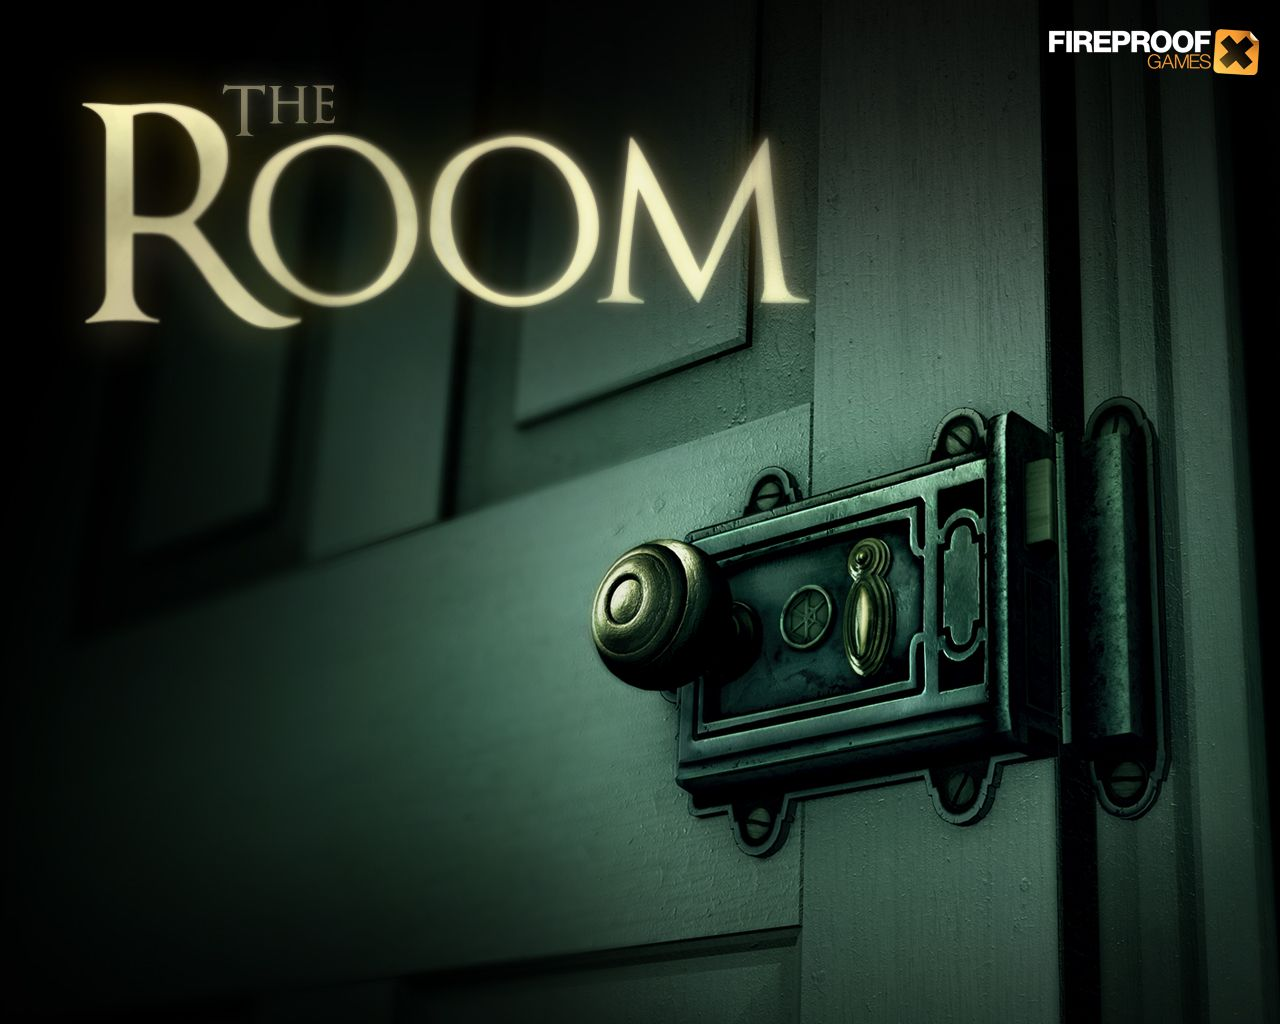 cultofmac - the room - ios oyunu